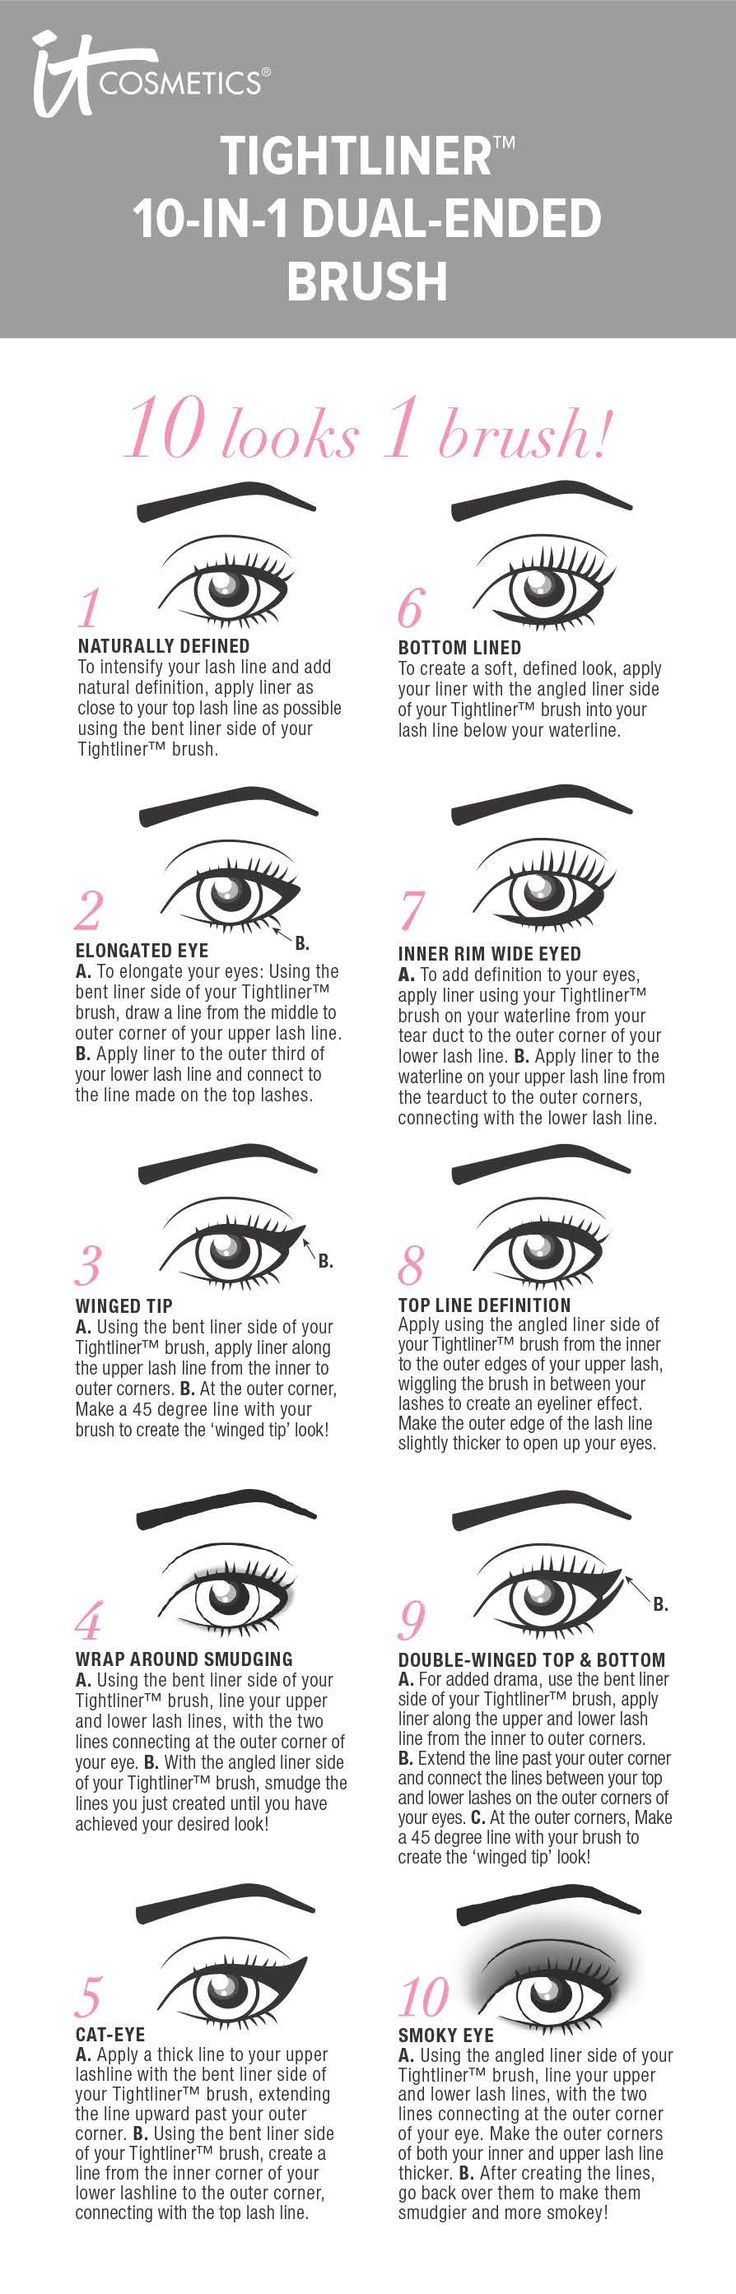 Want To Know How To Apply Eyeliner? It's Your Liner, Your Way With #